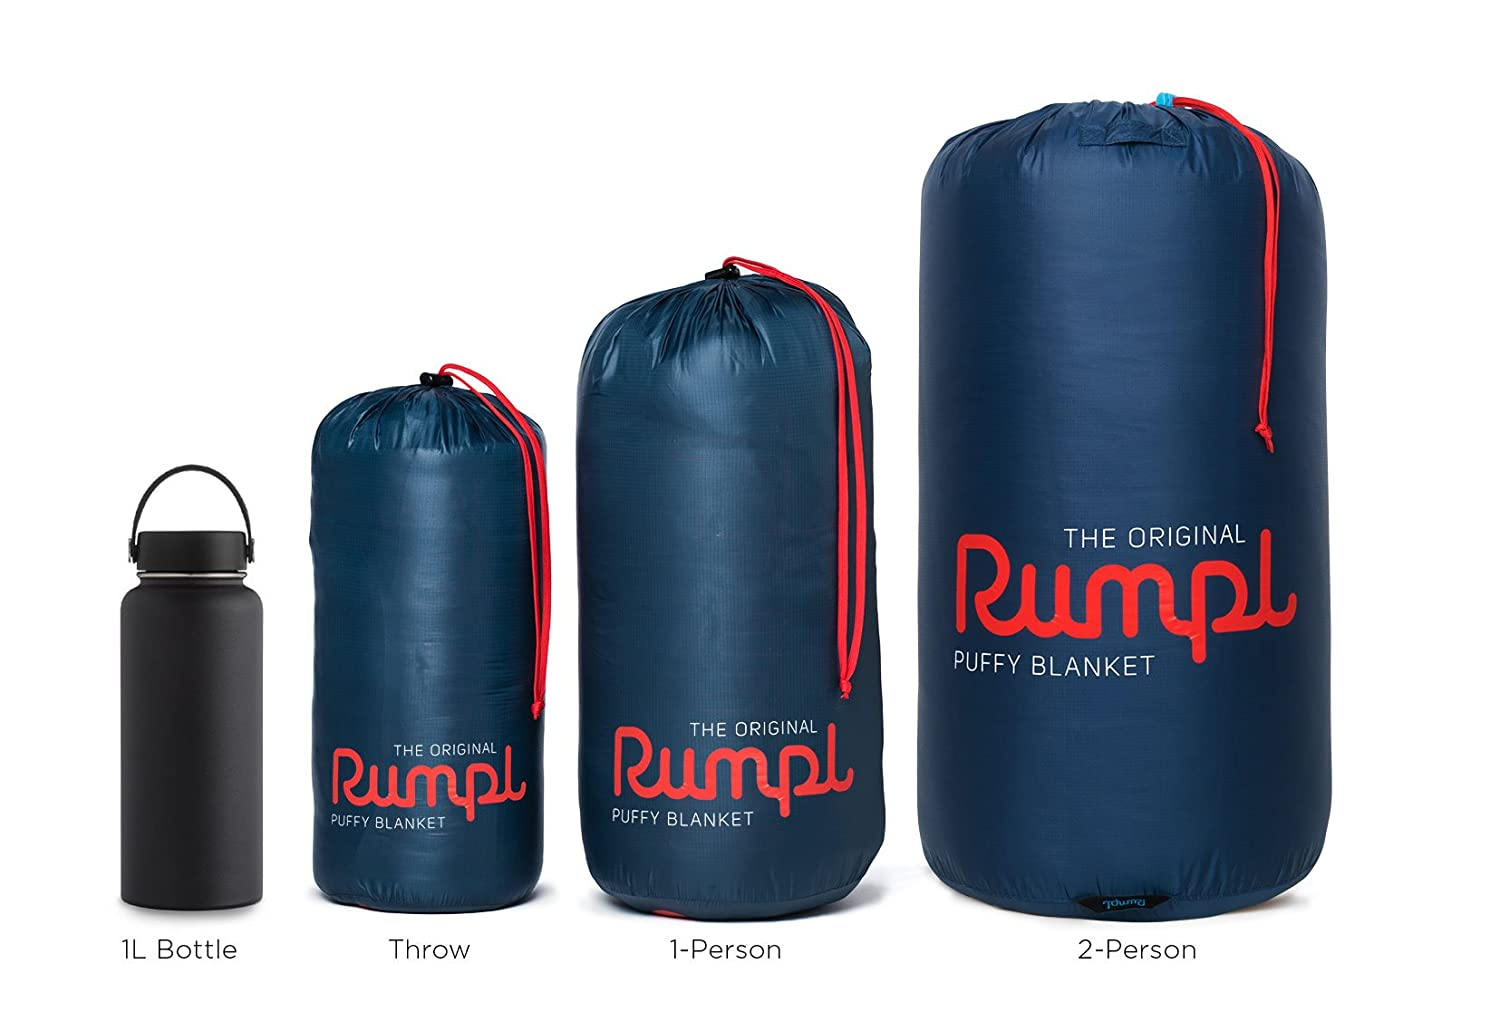 Beach Trips Rumpl The Original Puffy I Printed Outdoor Camping Blanket for Traveling Picnics Concerts